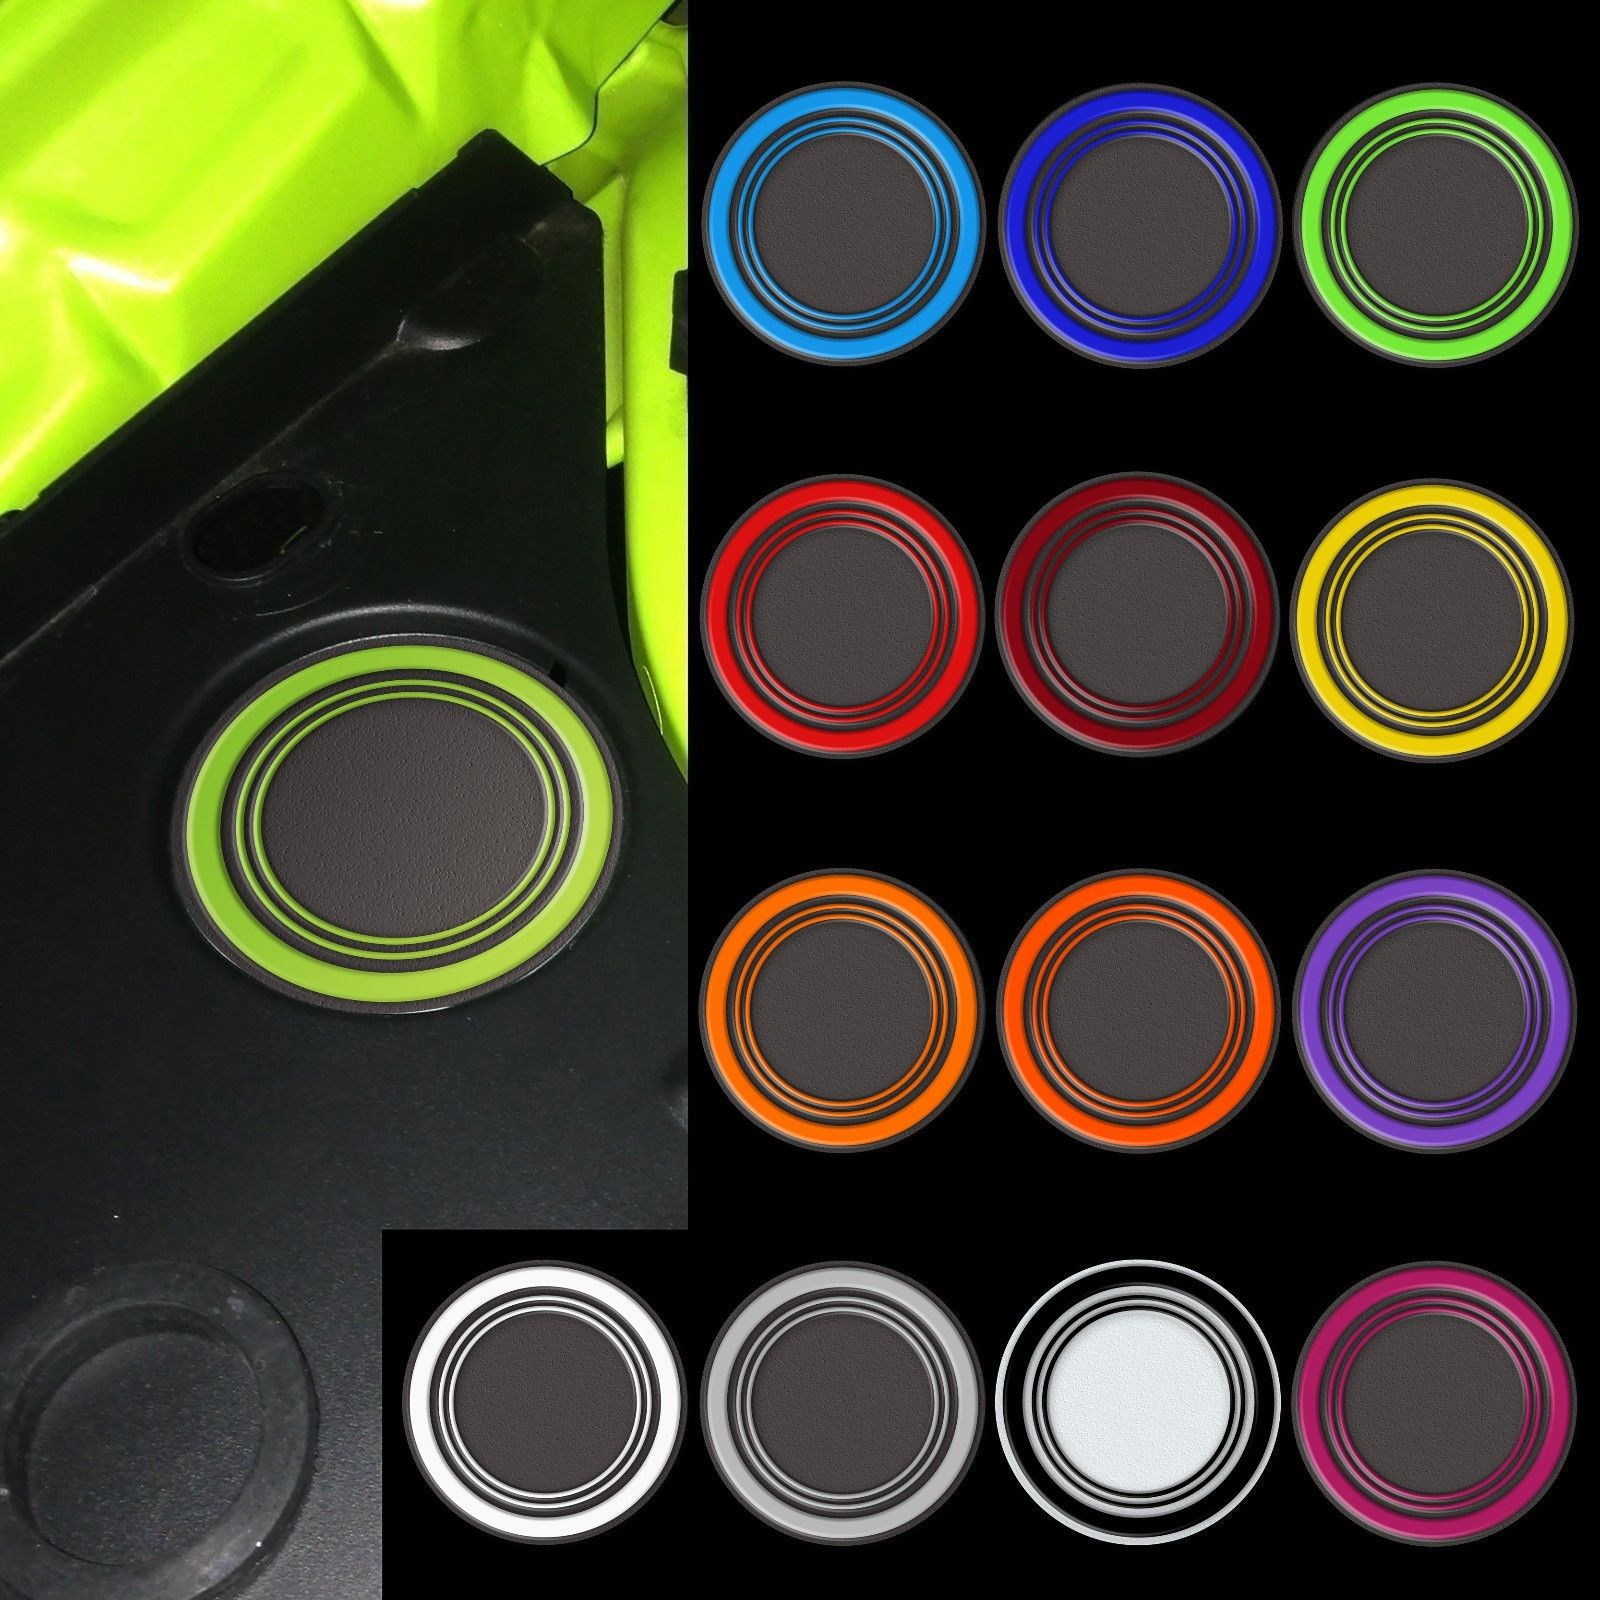 Color-Match Under Hood Beverage Holder Decal Kit